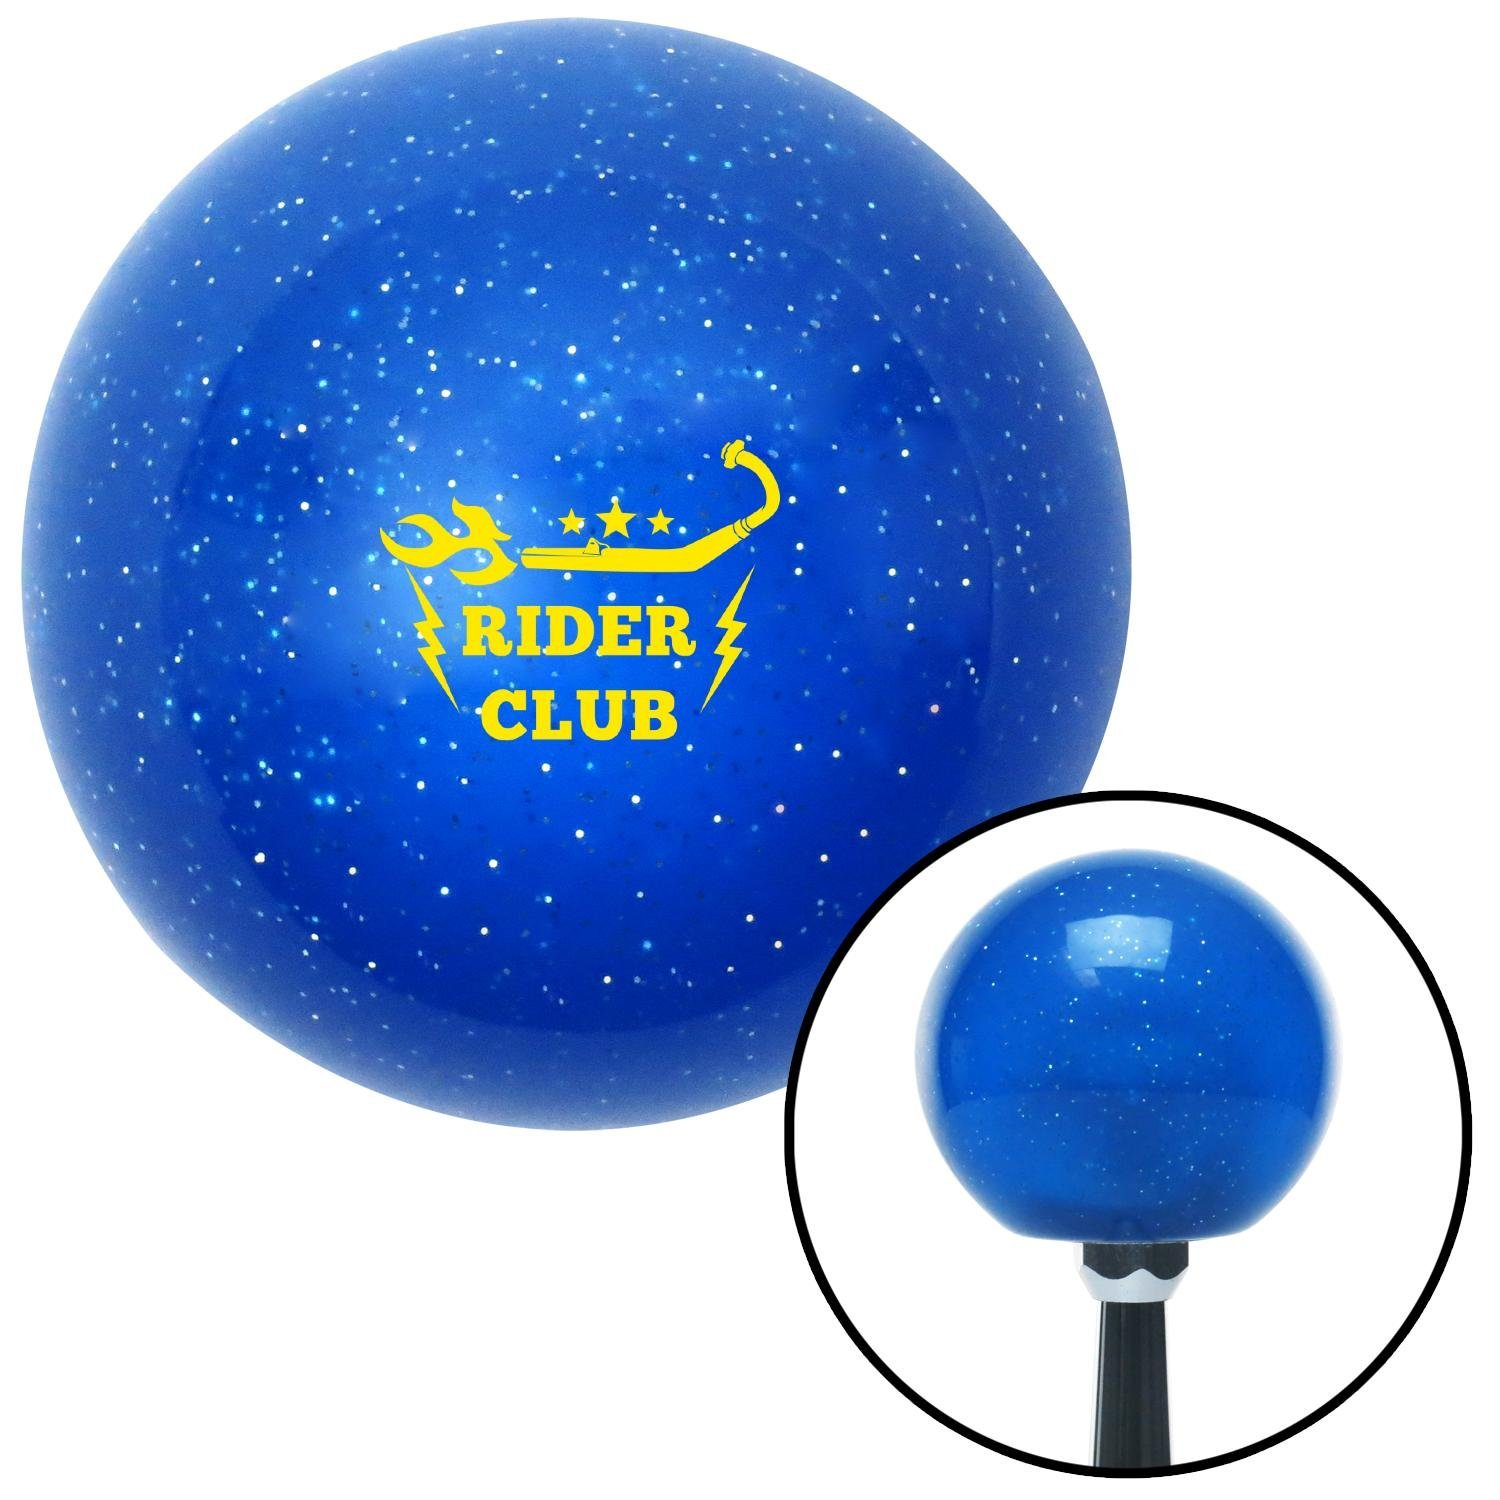 American Shifter 276530 Shift Knob Yellow Rider Club Blue Metal Flake with M16 x 1.5 Insert